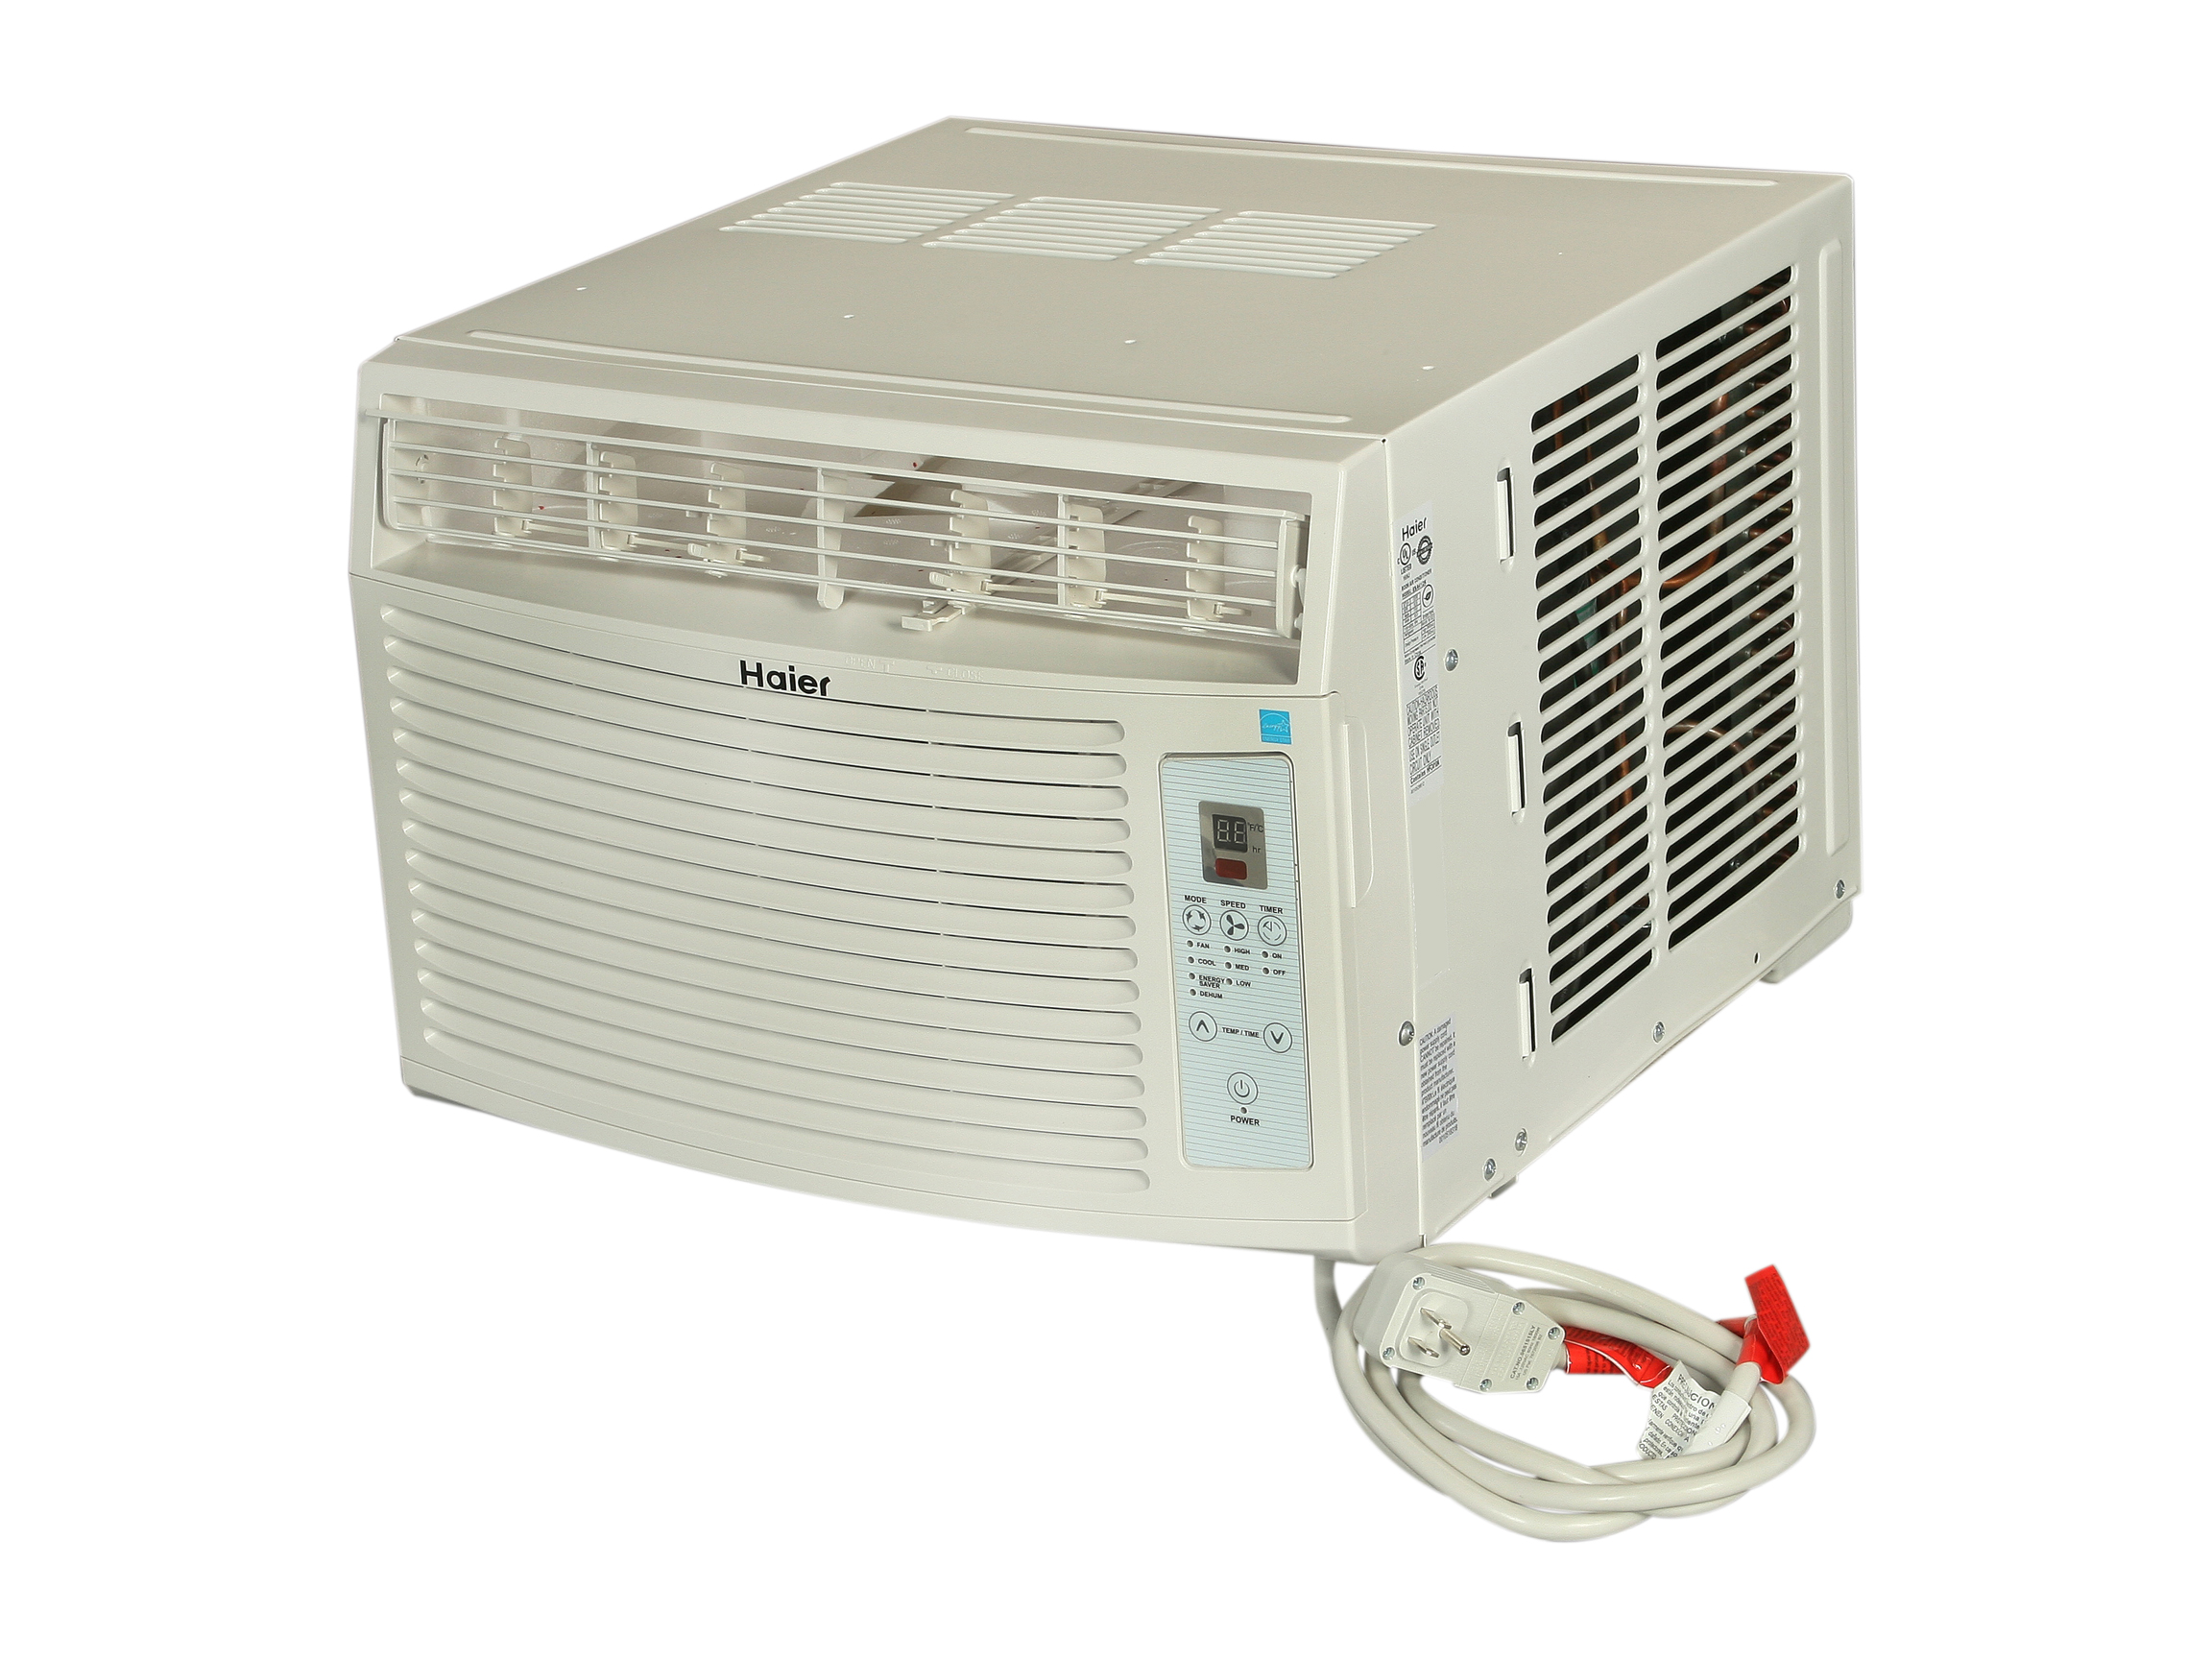 (BTU) Window Air Conditioner with Remote Control – NeweggFlash.com #B0241B